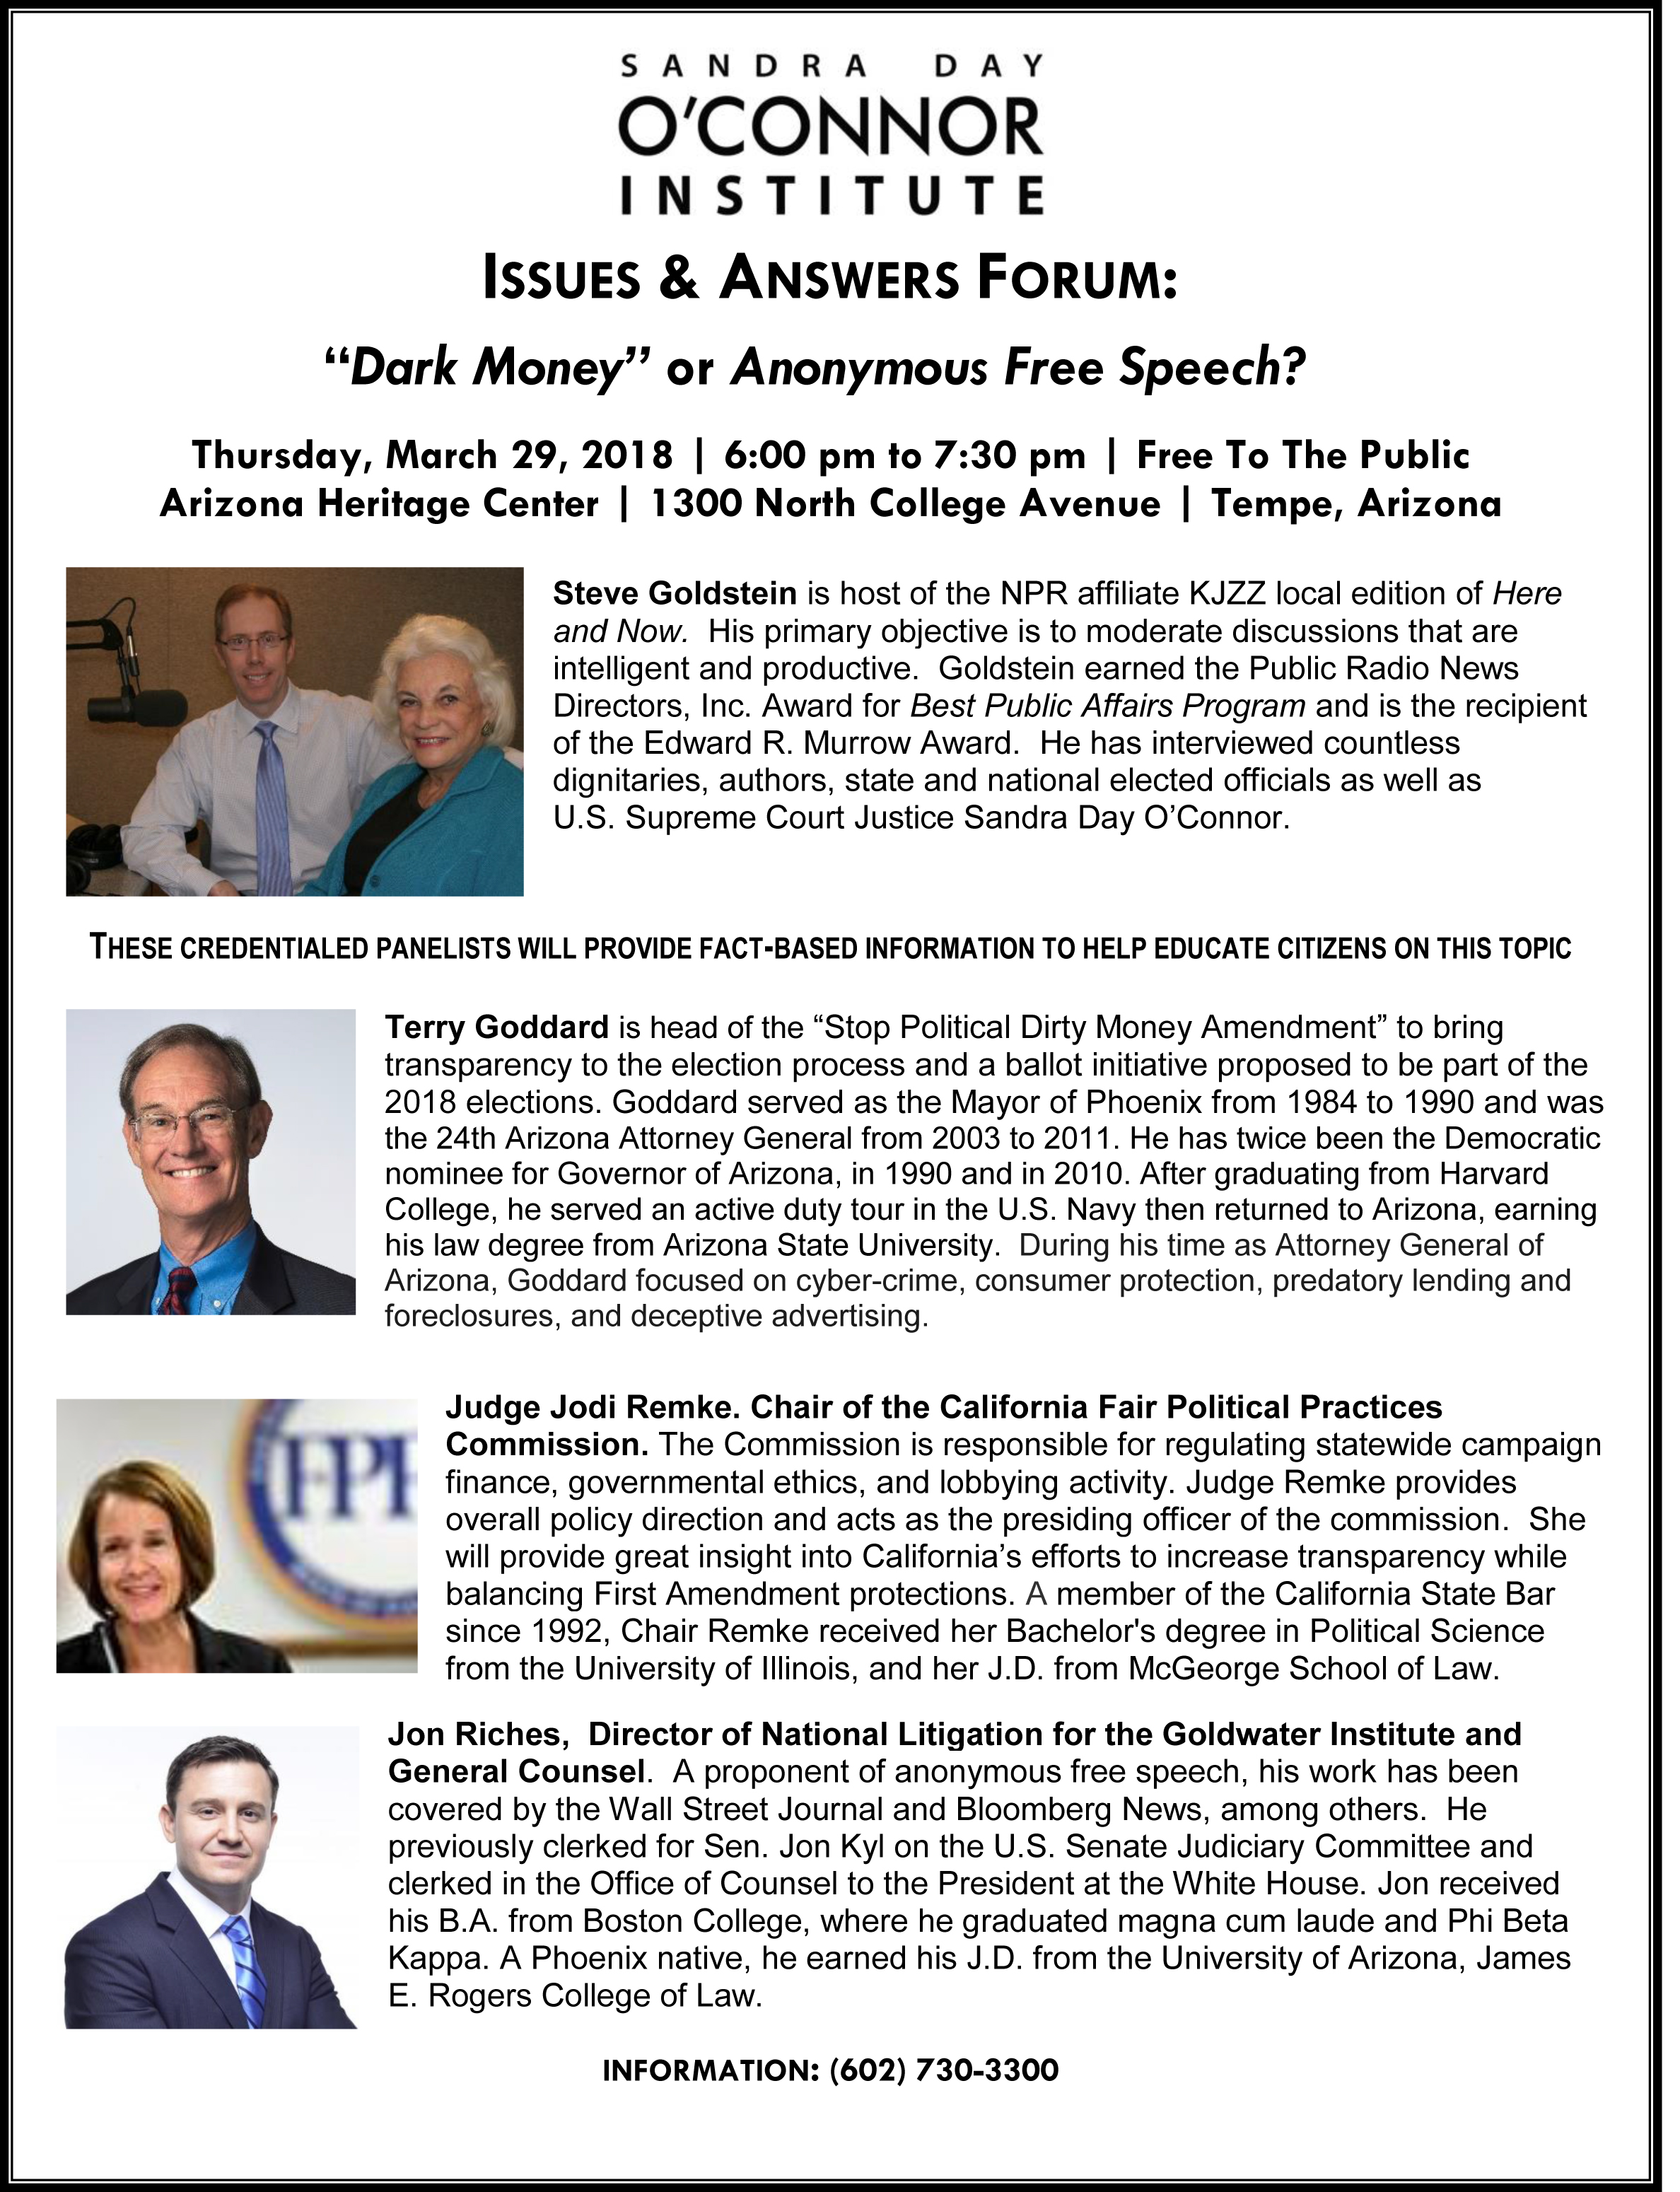 Public Policy Forum flyer picture